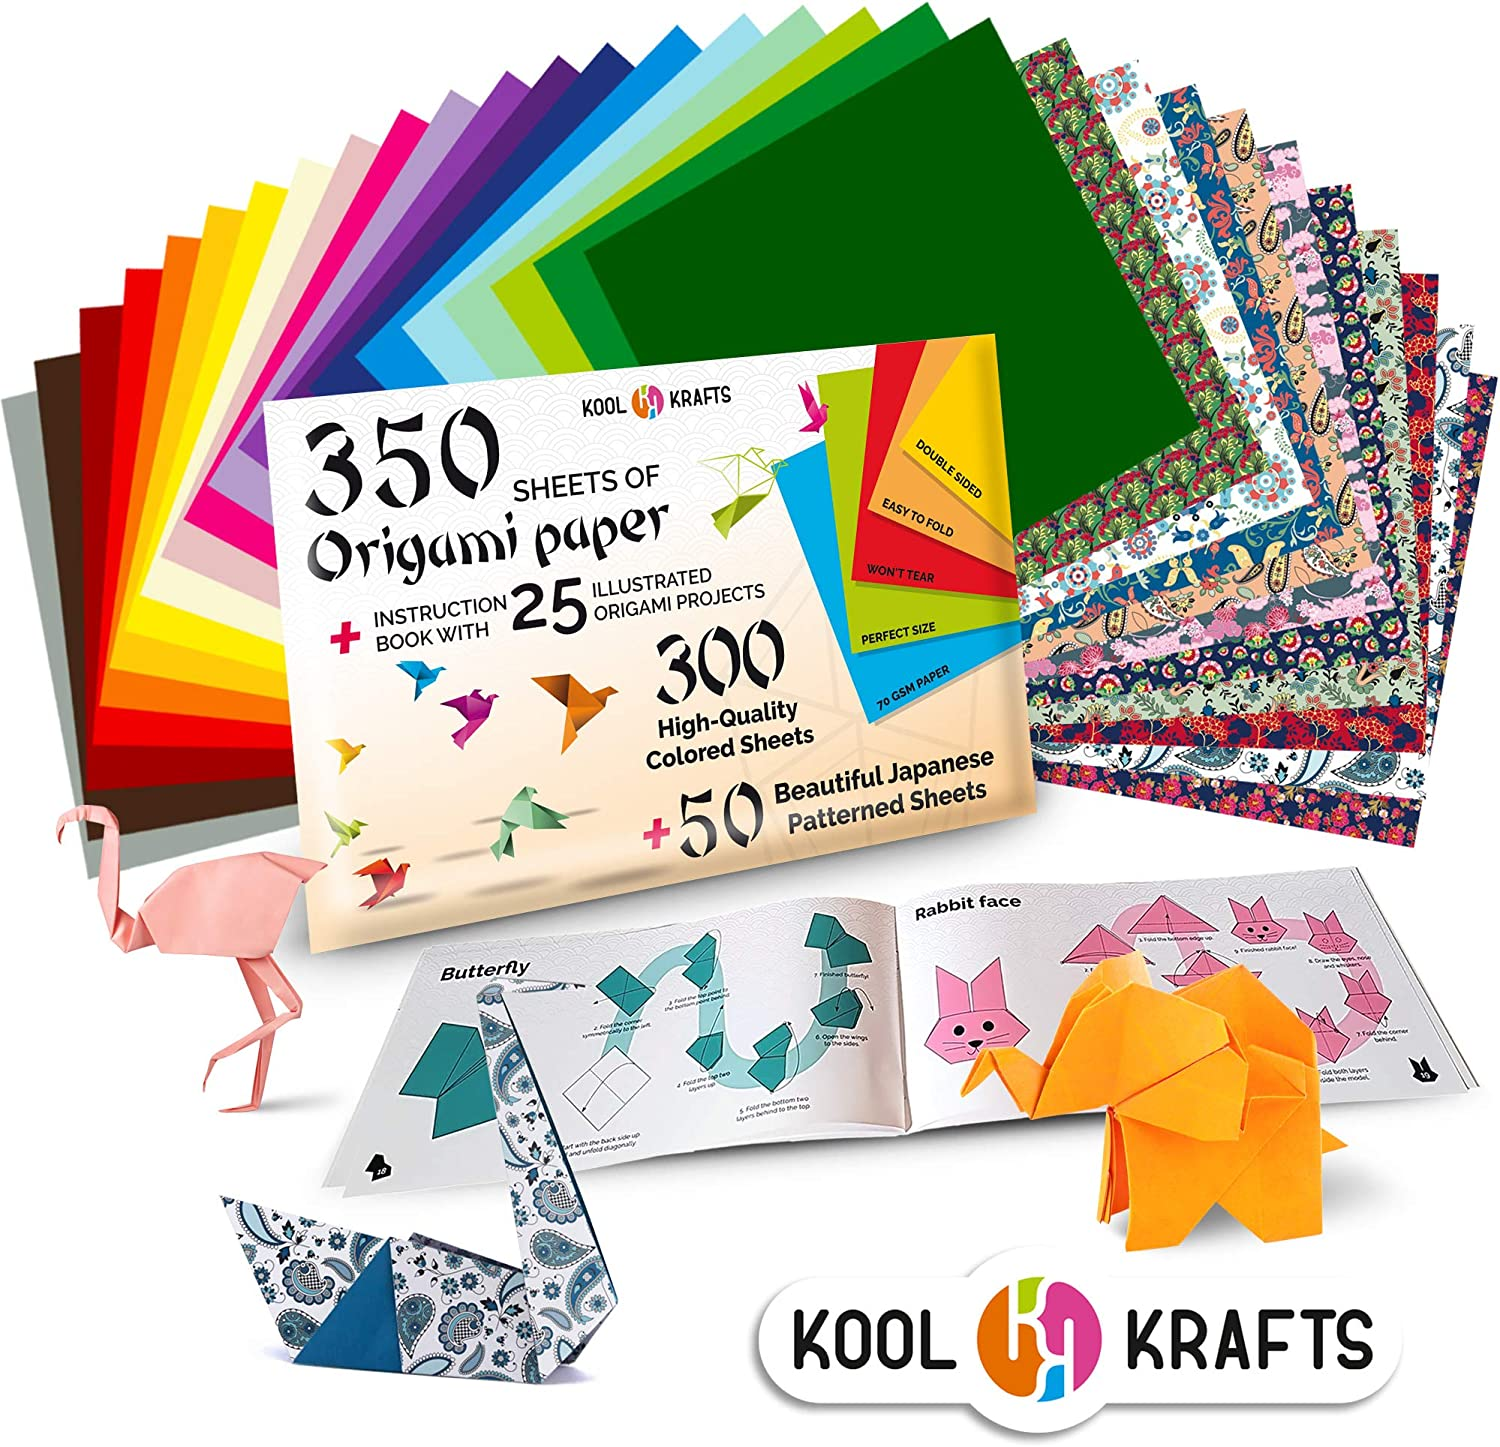 Amazon Com Kool Krafts 350 Origami Paper Kit With 25 Easy Origami Projects Colored Book Premium Quality For Arts And Crafts 6x6 Inch Square Sheets 20 Vibrant Same Color On Both Sides 50 Japanese Patterns